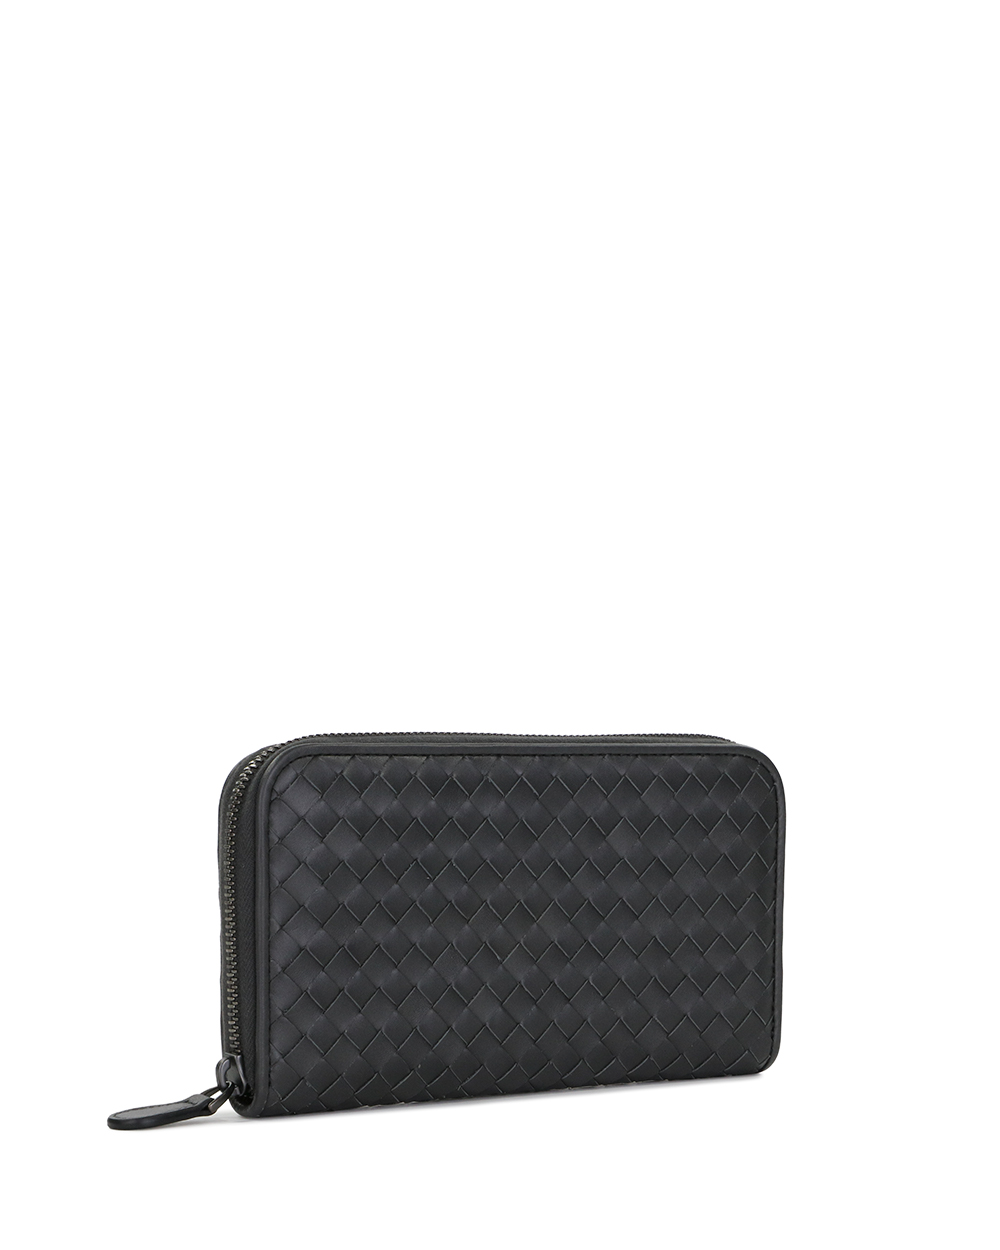 Woven Leather Long Wallet 3